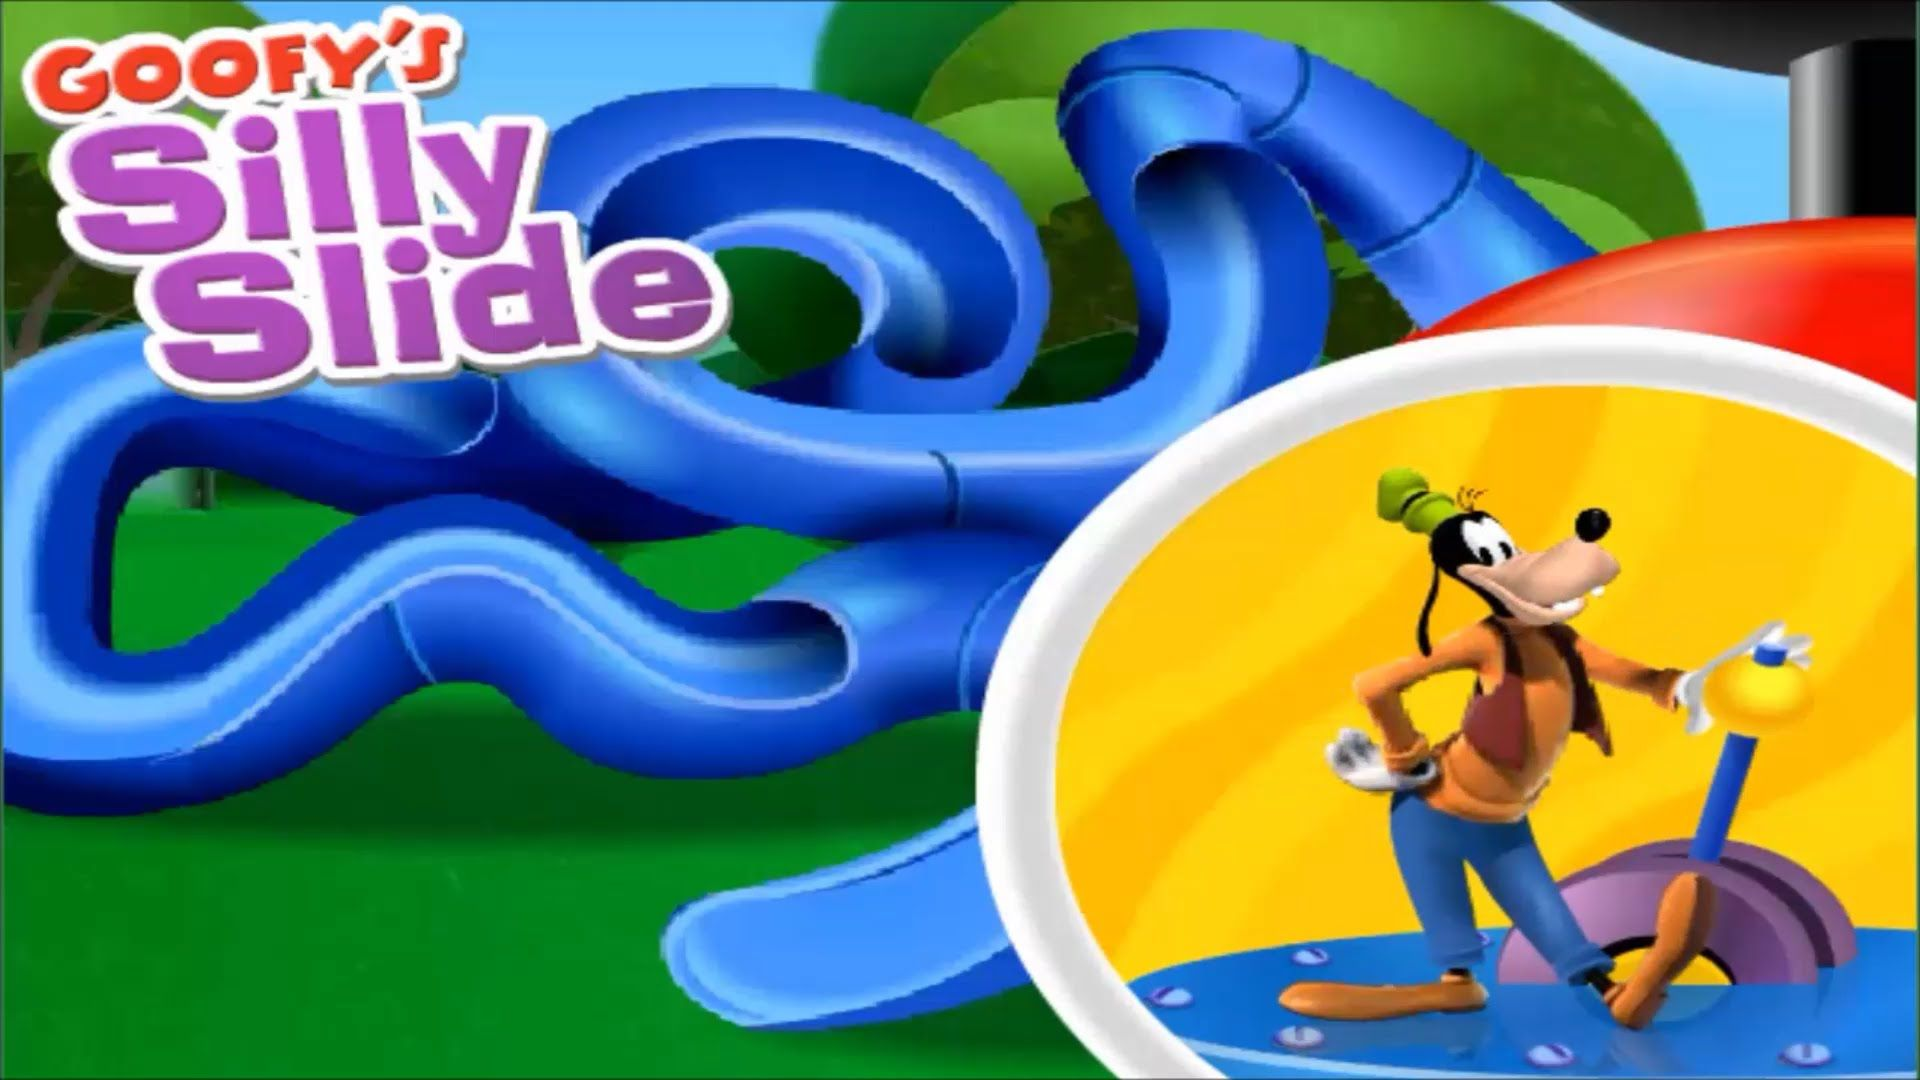 Giochi Mickey Mouse Mickey Mouse Clubhouse Goofy 39s Silly Slide Goofy 39s